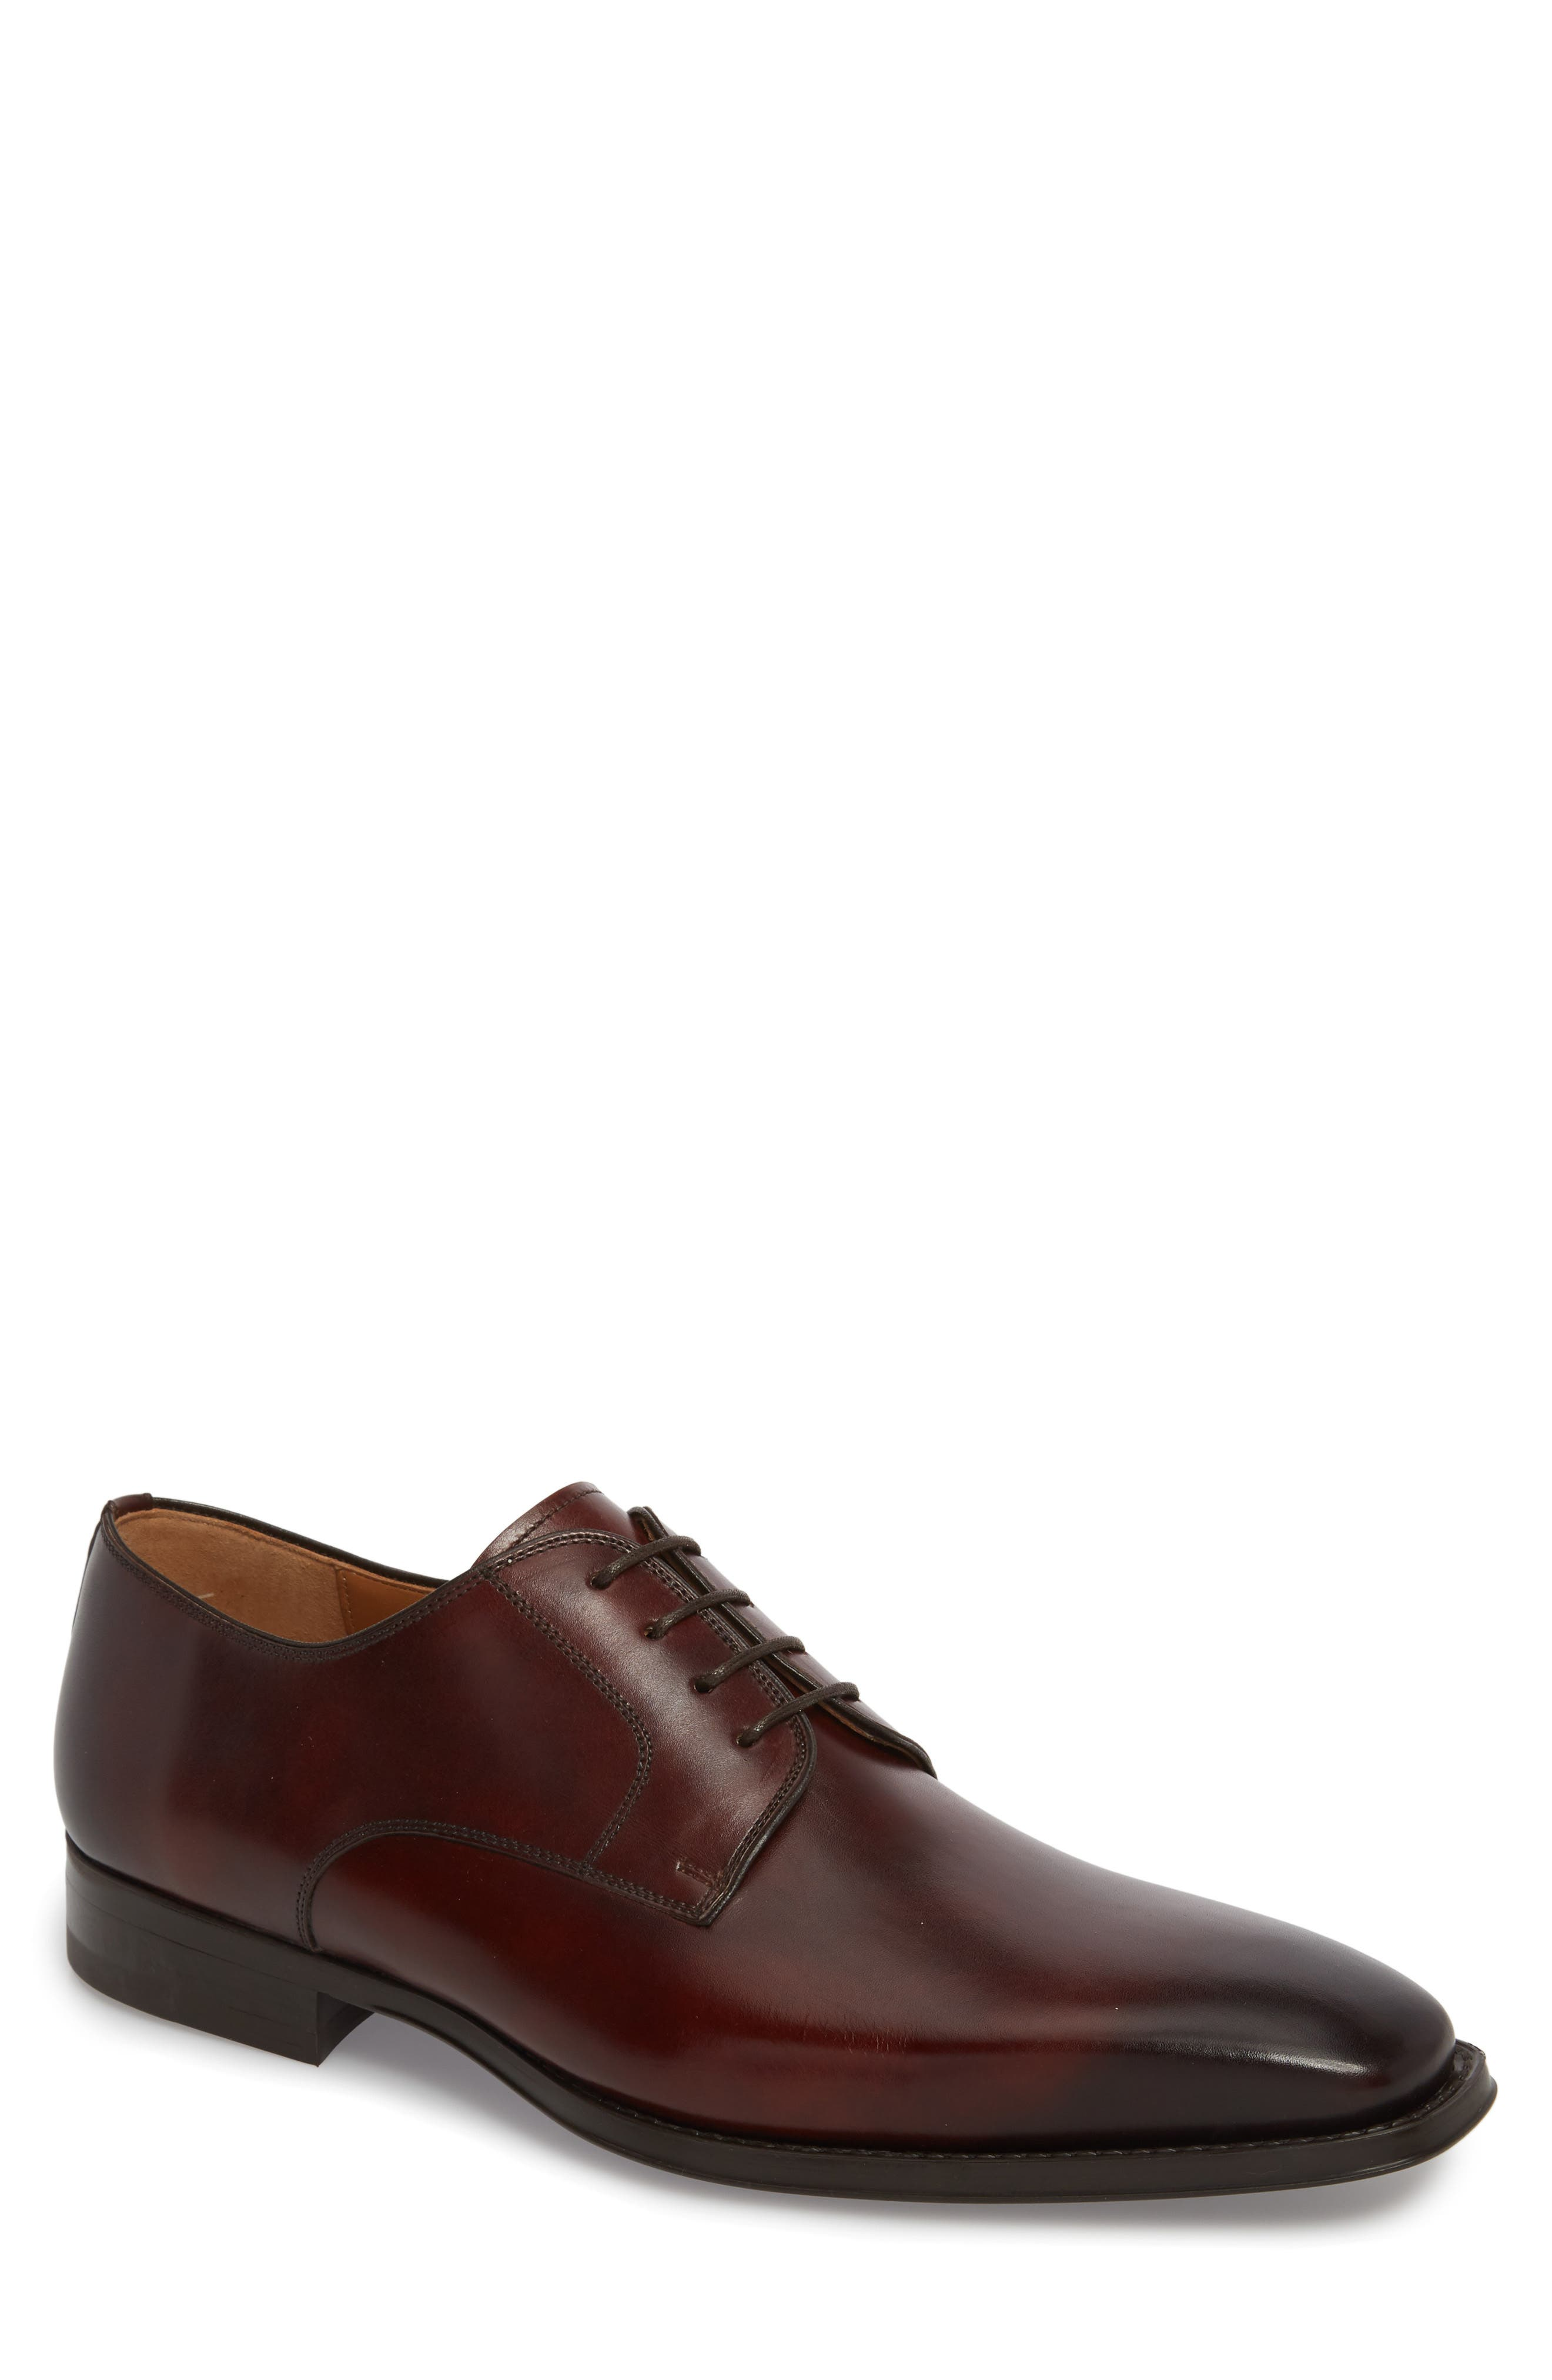 Colo II Plain Toe Derby,                             Main thumbnail 1, color,                             Mid Brown Leather